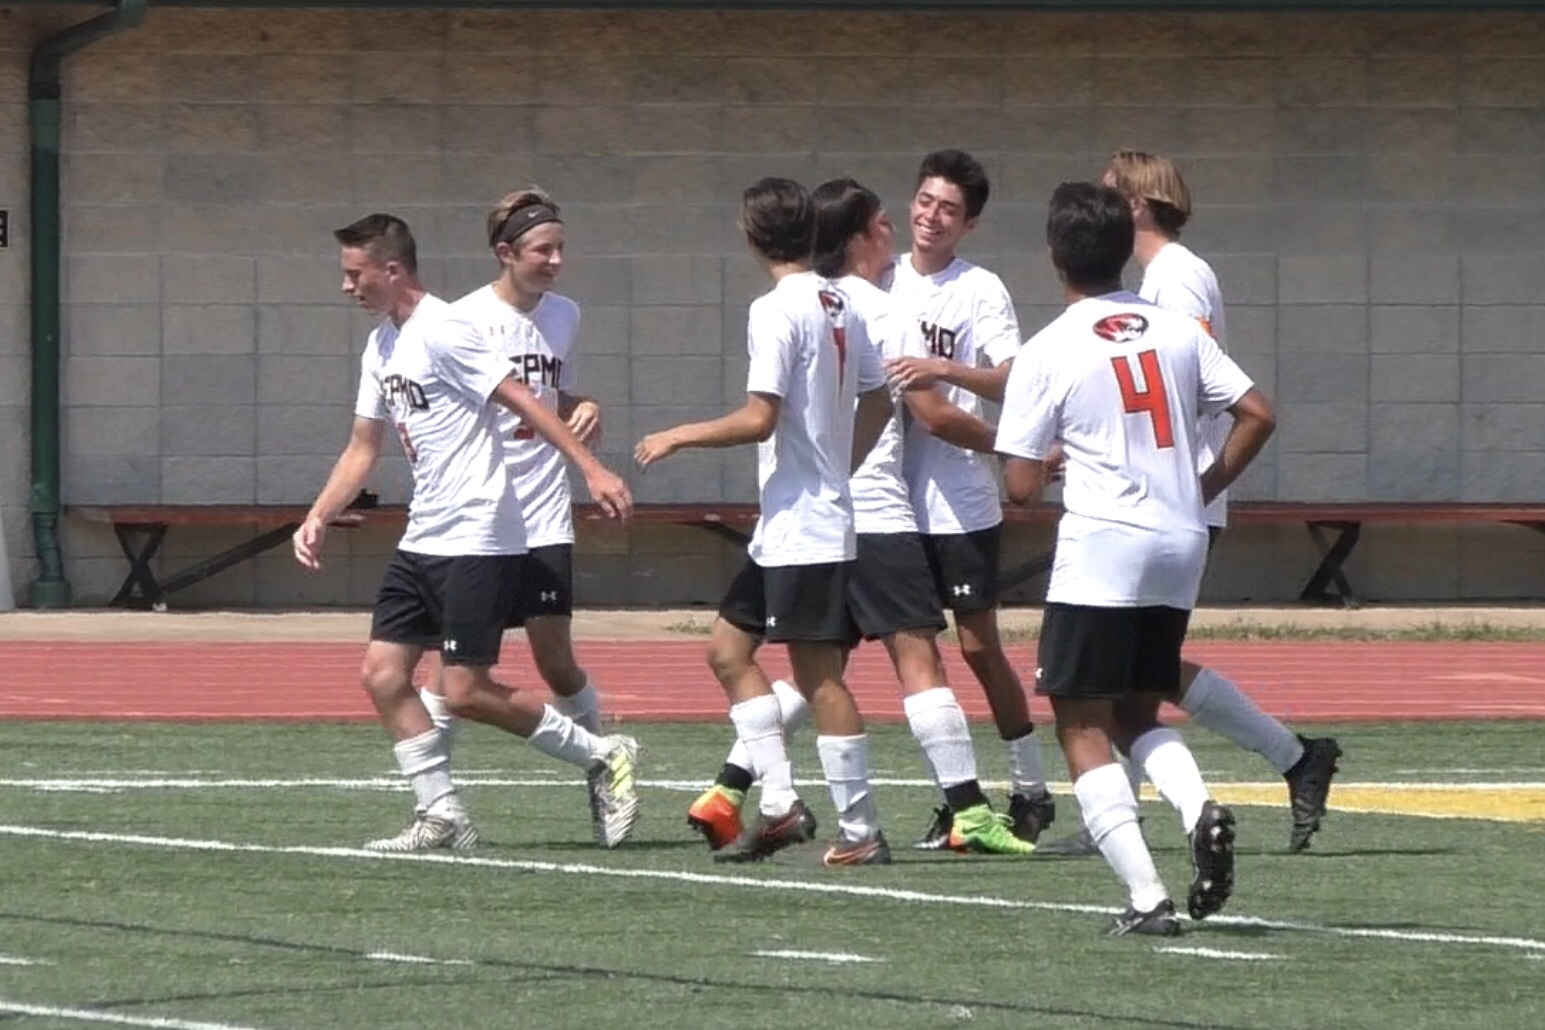 'Chec-mate: Pacheco's Goal Delivers Tiger Title